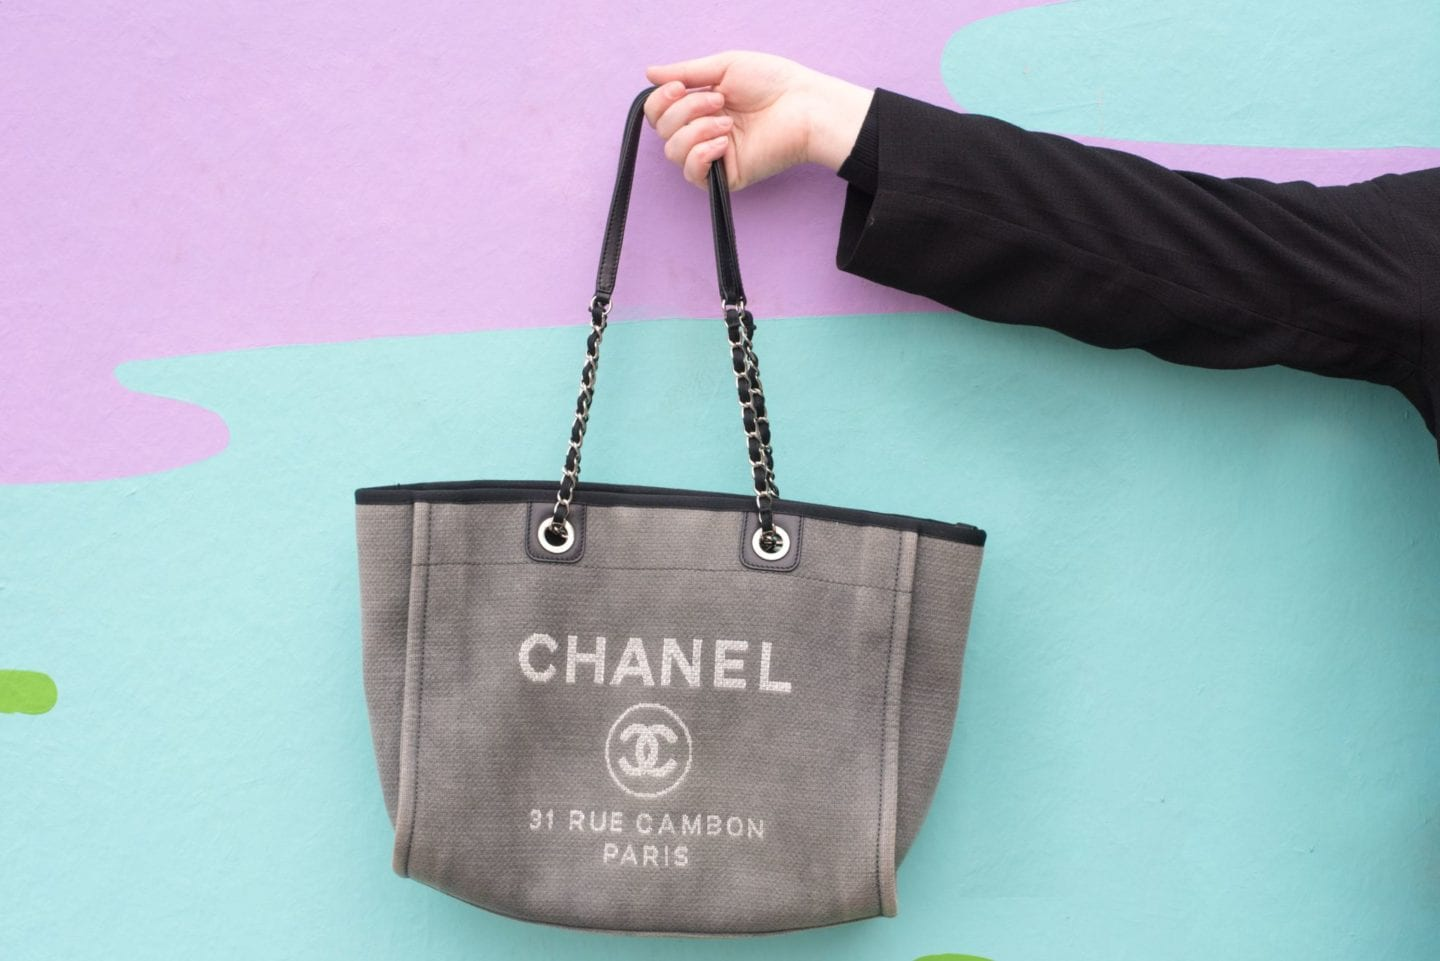 25c527a91346 My Thoughts On The Chanel Deauville Tote Bag... - Fashion For Lunch.